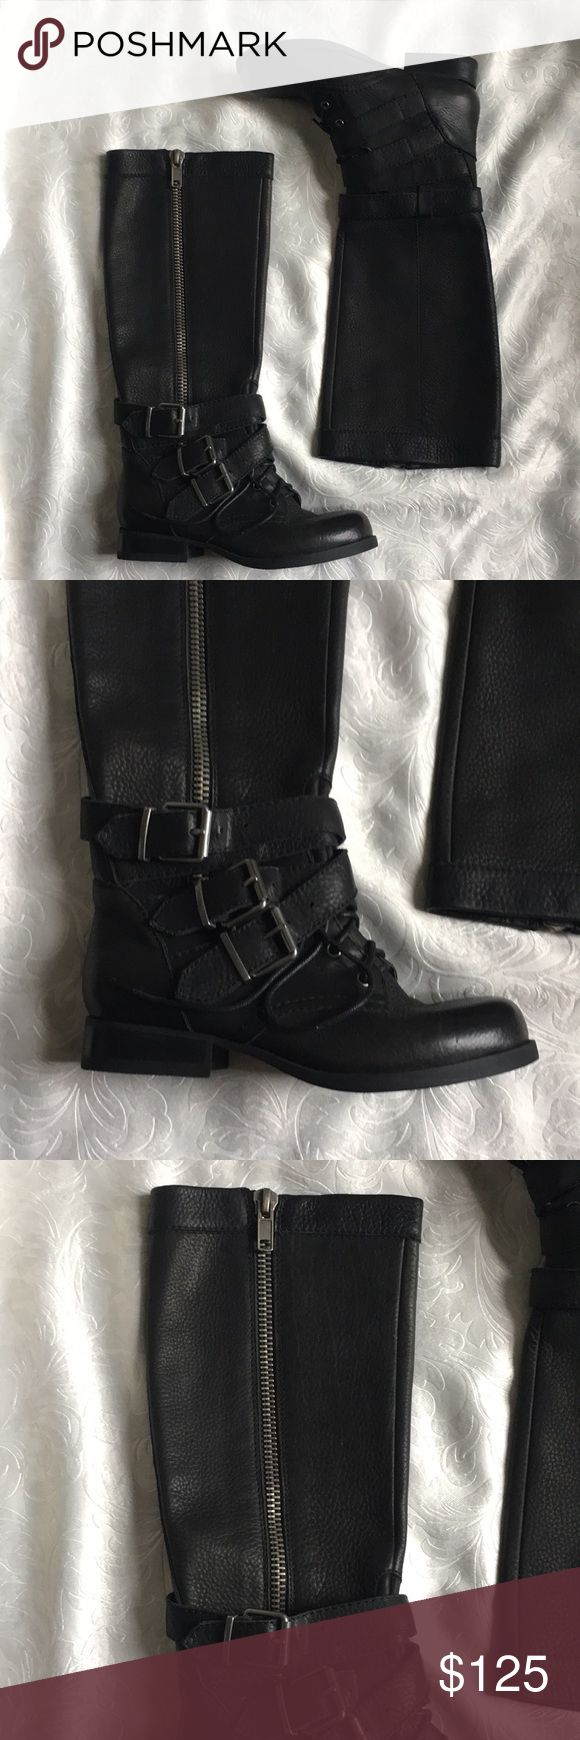 Genuine Leather Black ALDO Boots These were worn once for about 2 hours.  They are real leather so they need to be cared for well and weather proofed. Incredible quality. Flaw free :) Unfortunately I don't have the box for them anymore.  Please feel free to ask questions and I'd be happy to bundle up a few of your favorites at a discounted price!! :) Aldo Shoes Combat & Moto Boots